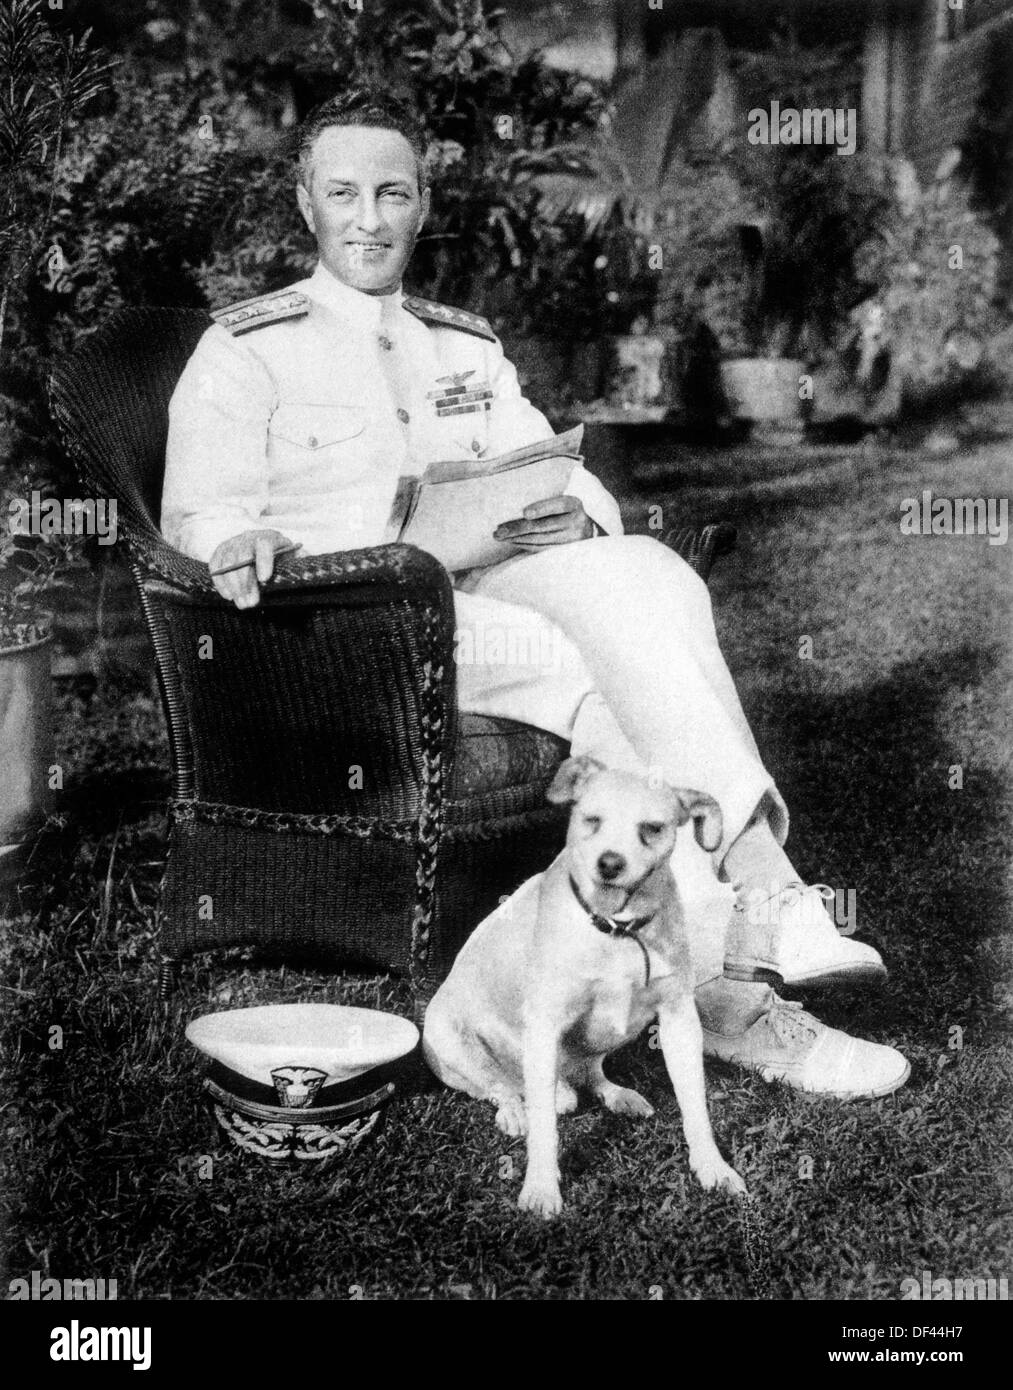 Admiral Richard E. Byrd with Igloo, his Pet Wire Fox Terrier, Portrait, Circa 1920's - Stock Image